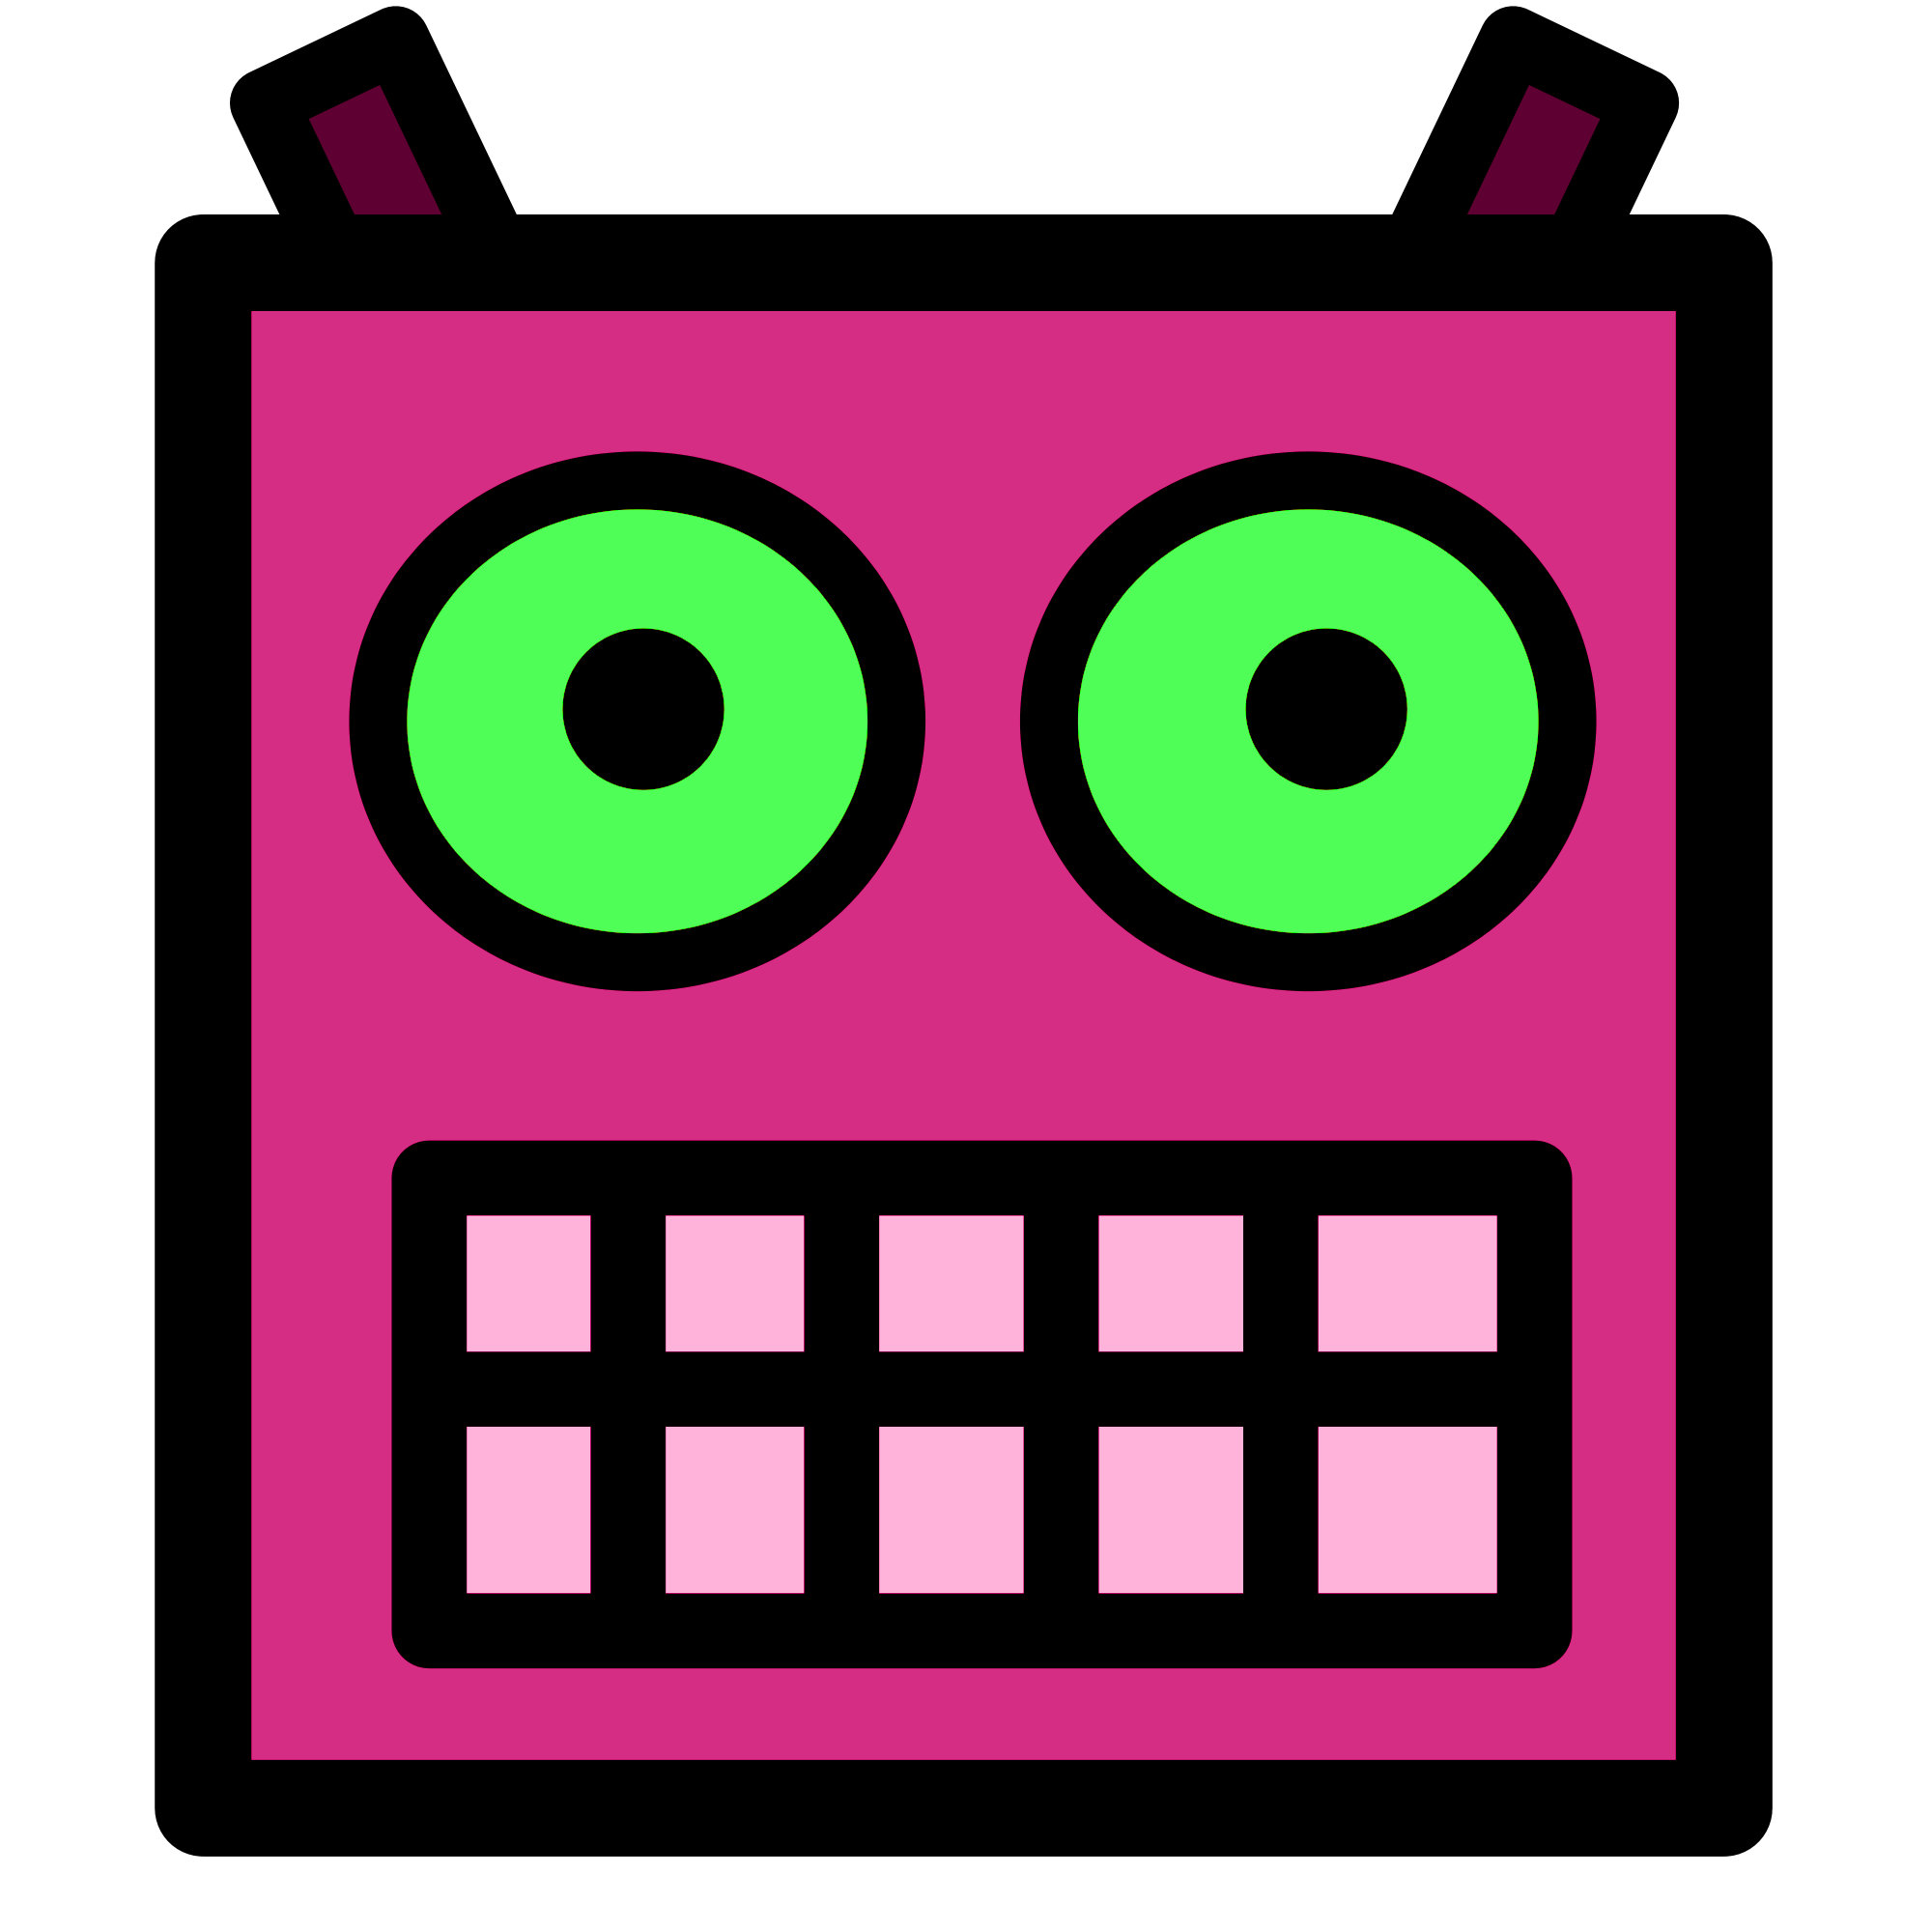 4202 Robot free clipart.